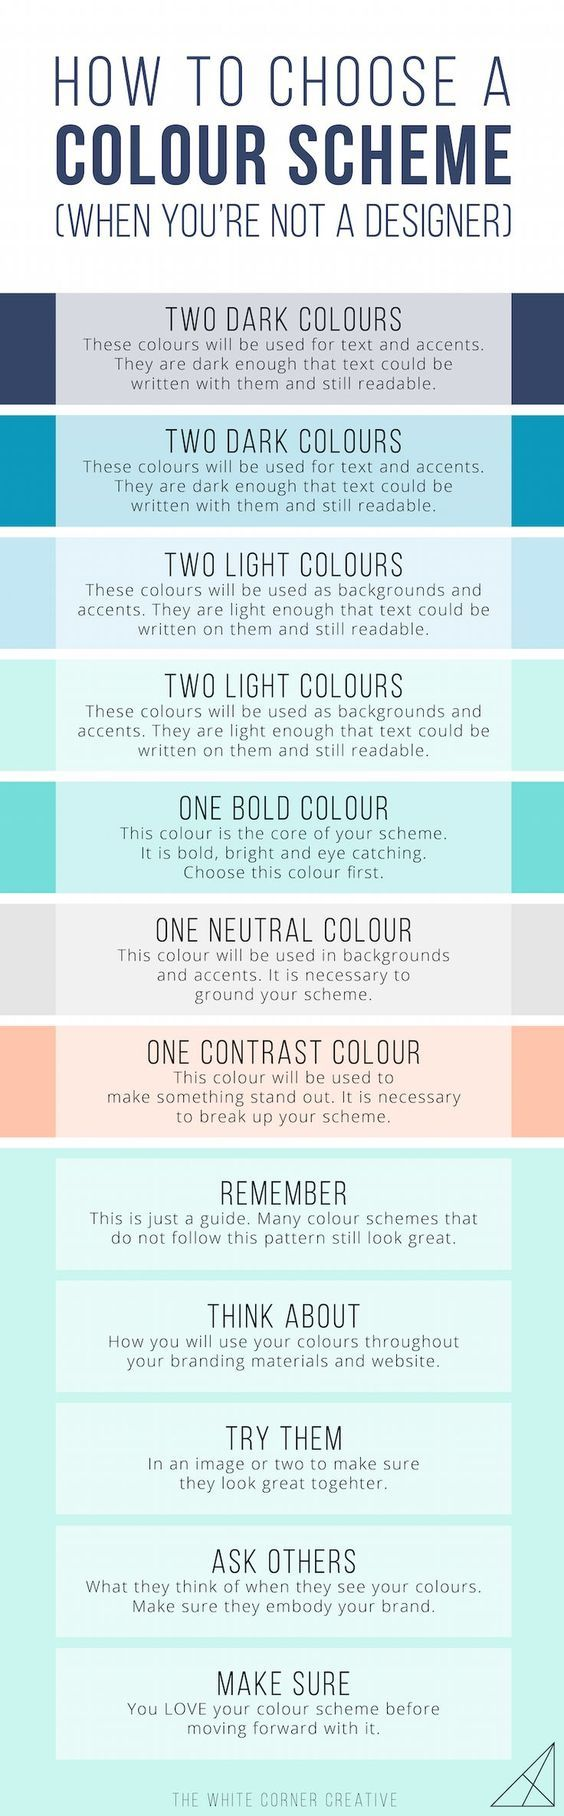 These 9 home decor charts are THE BEST! I'm so glad I found this! These have seriously helped me redecorate my rooms and make them look AMAZING! So pinning this!